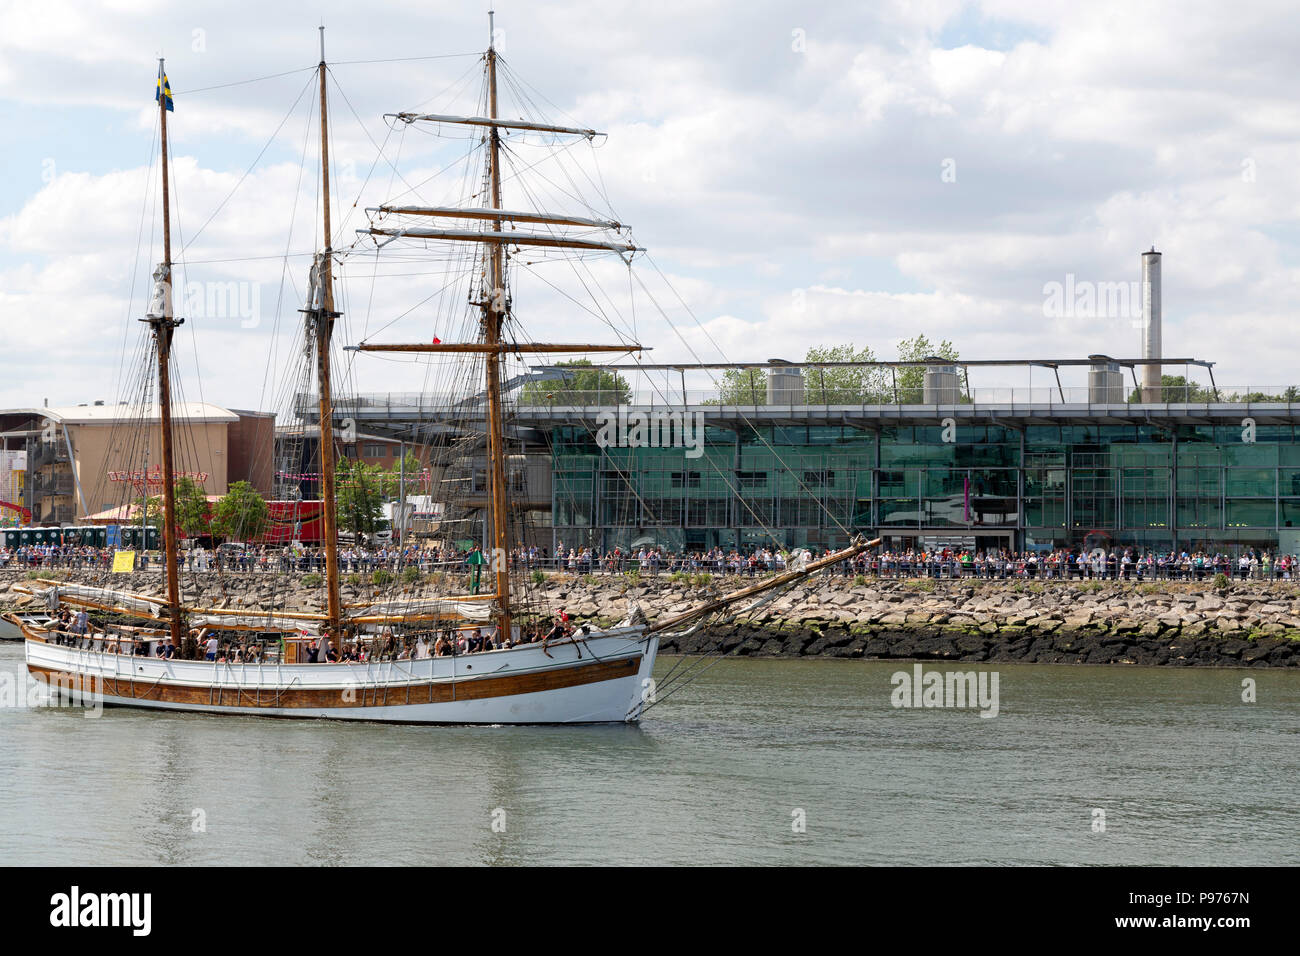 Sunderland, UK. 14th July 2018. The Vega Gamleby sails past the UK's National Glass Centre in Sunderland, England. The ship iis participating in the Parade of Sail at the start of the 2018 Tall Ships Race. Credit: Stuart Forster/Alamy Live News - Stock Image